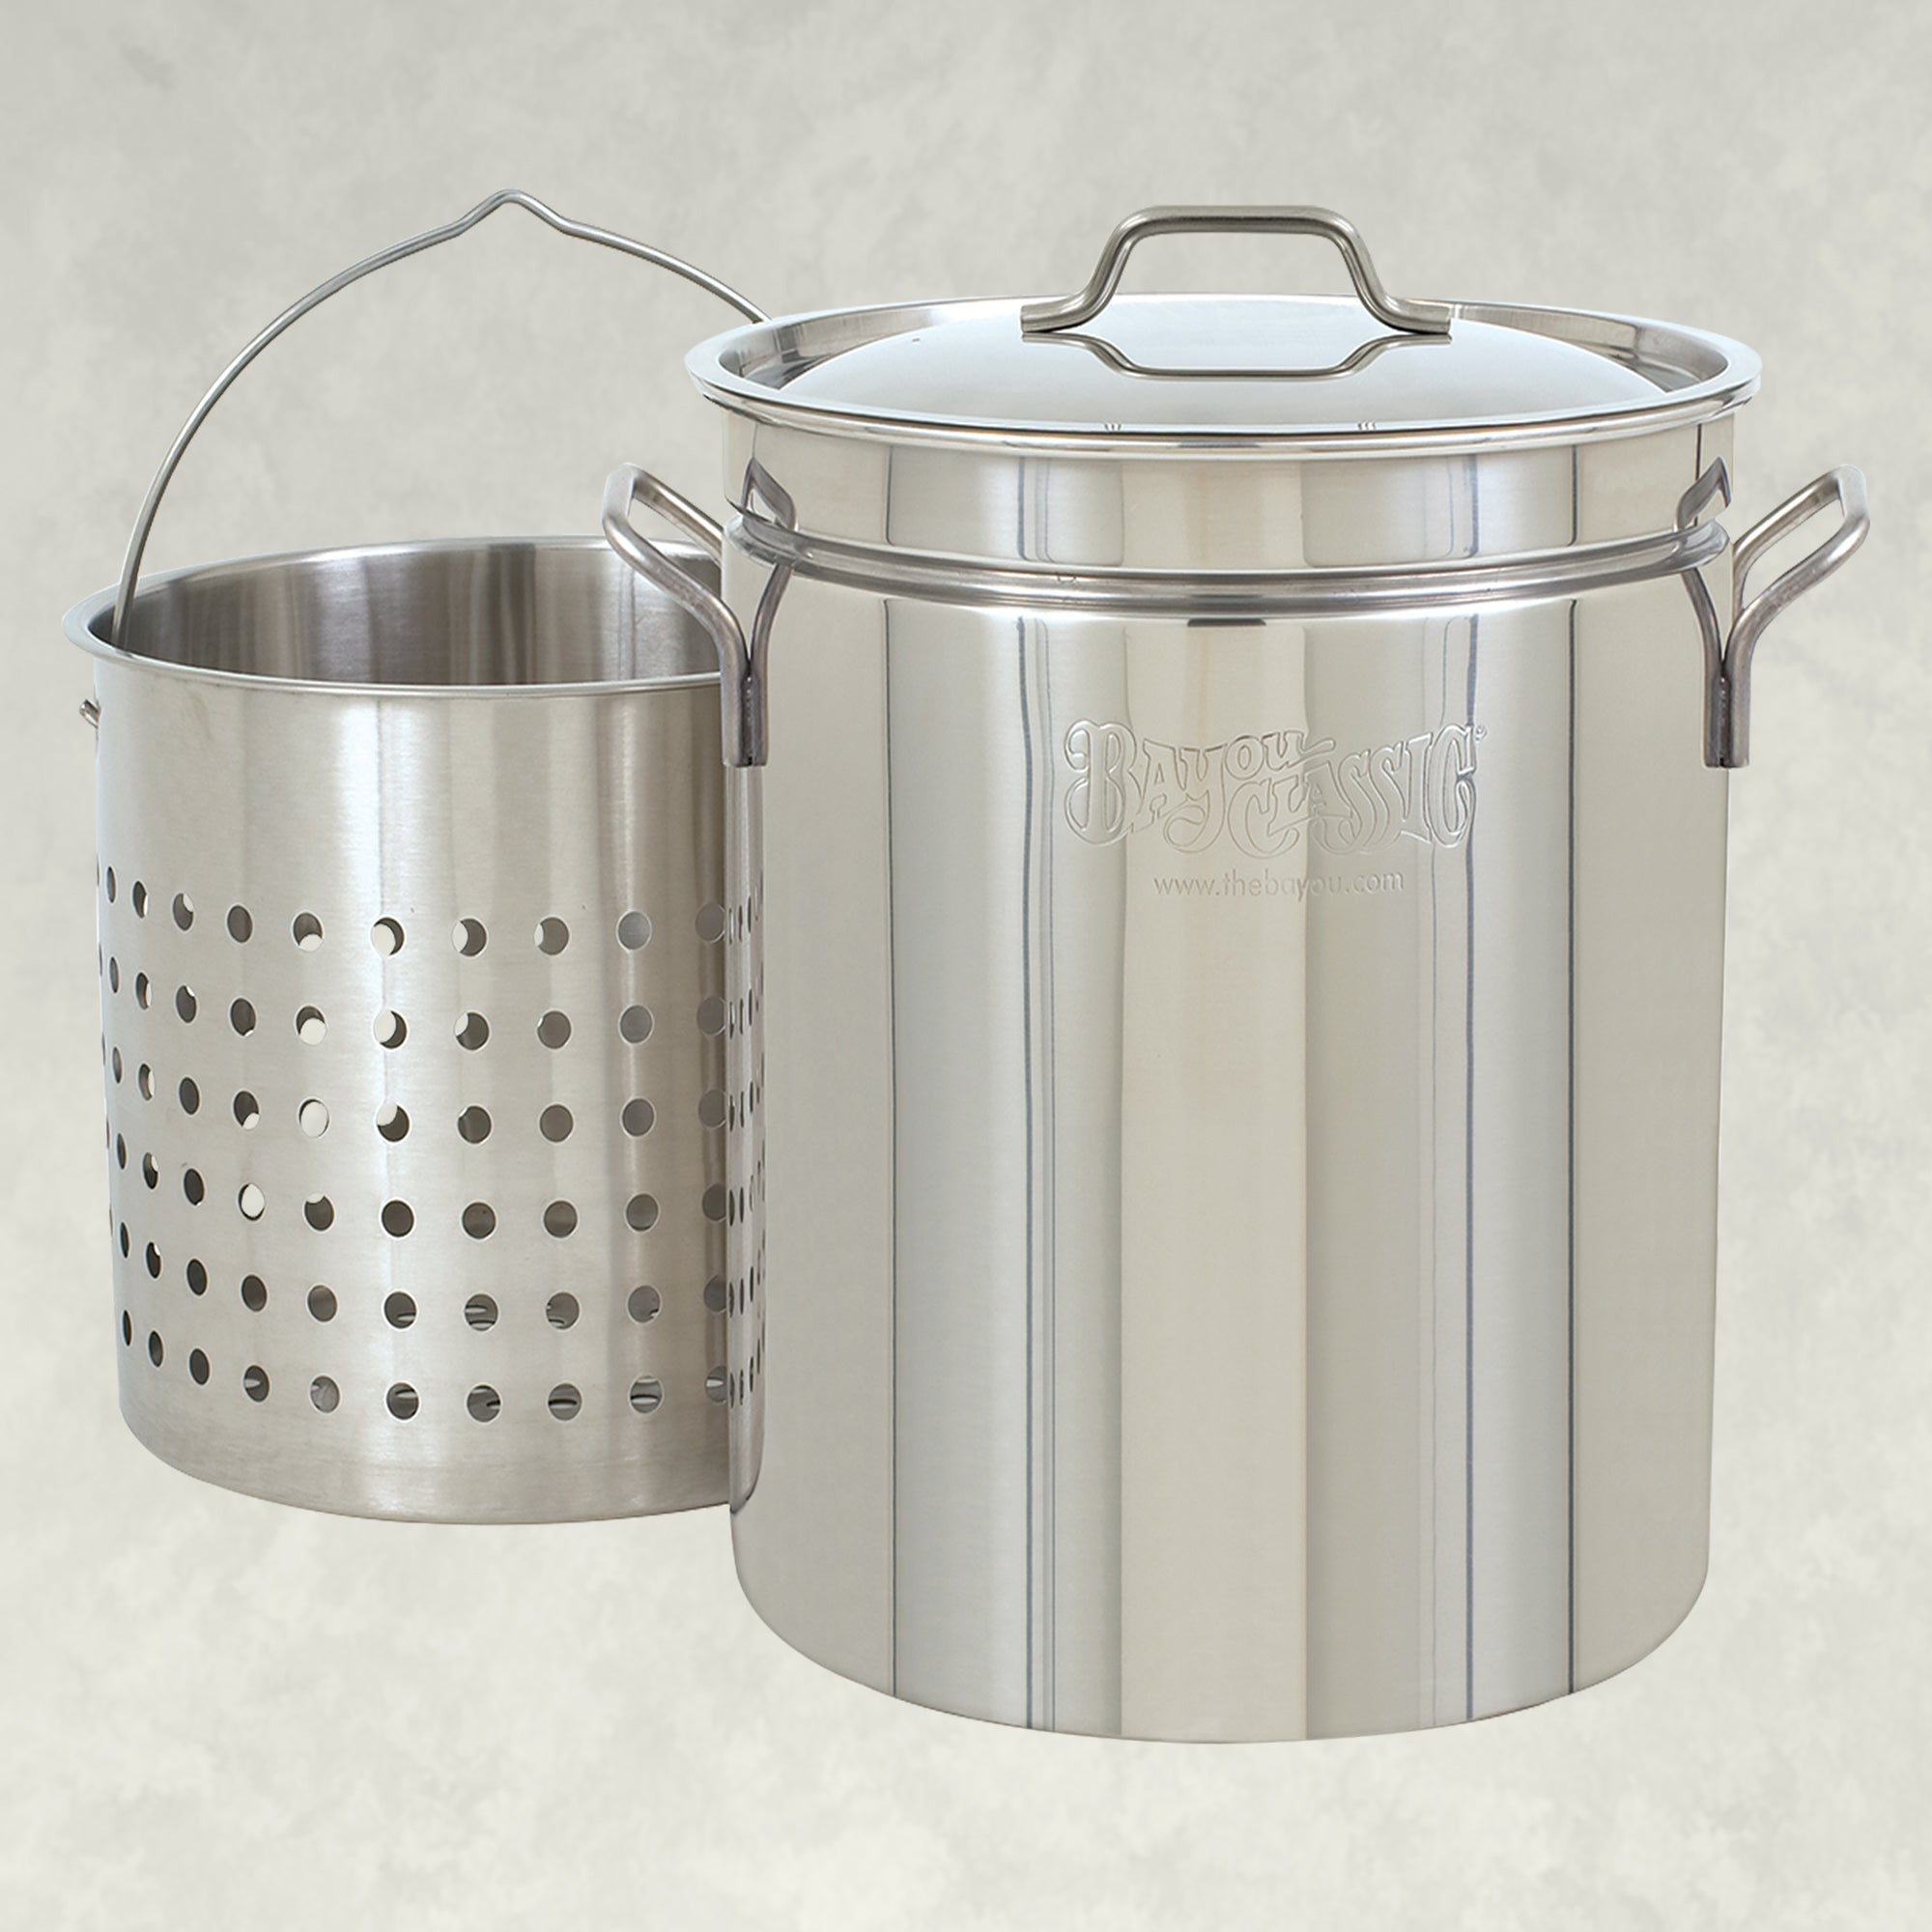 44-qt Stainless Stockpot with Basket